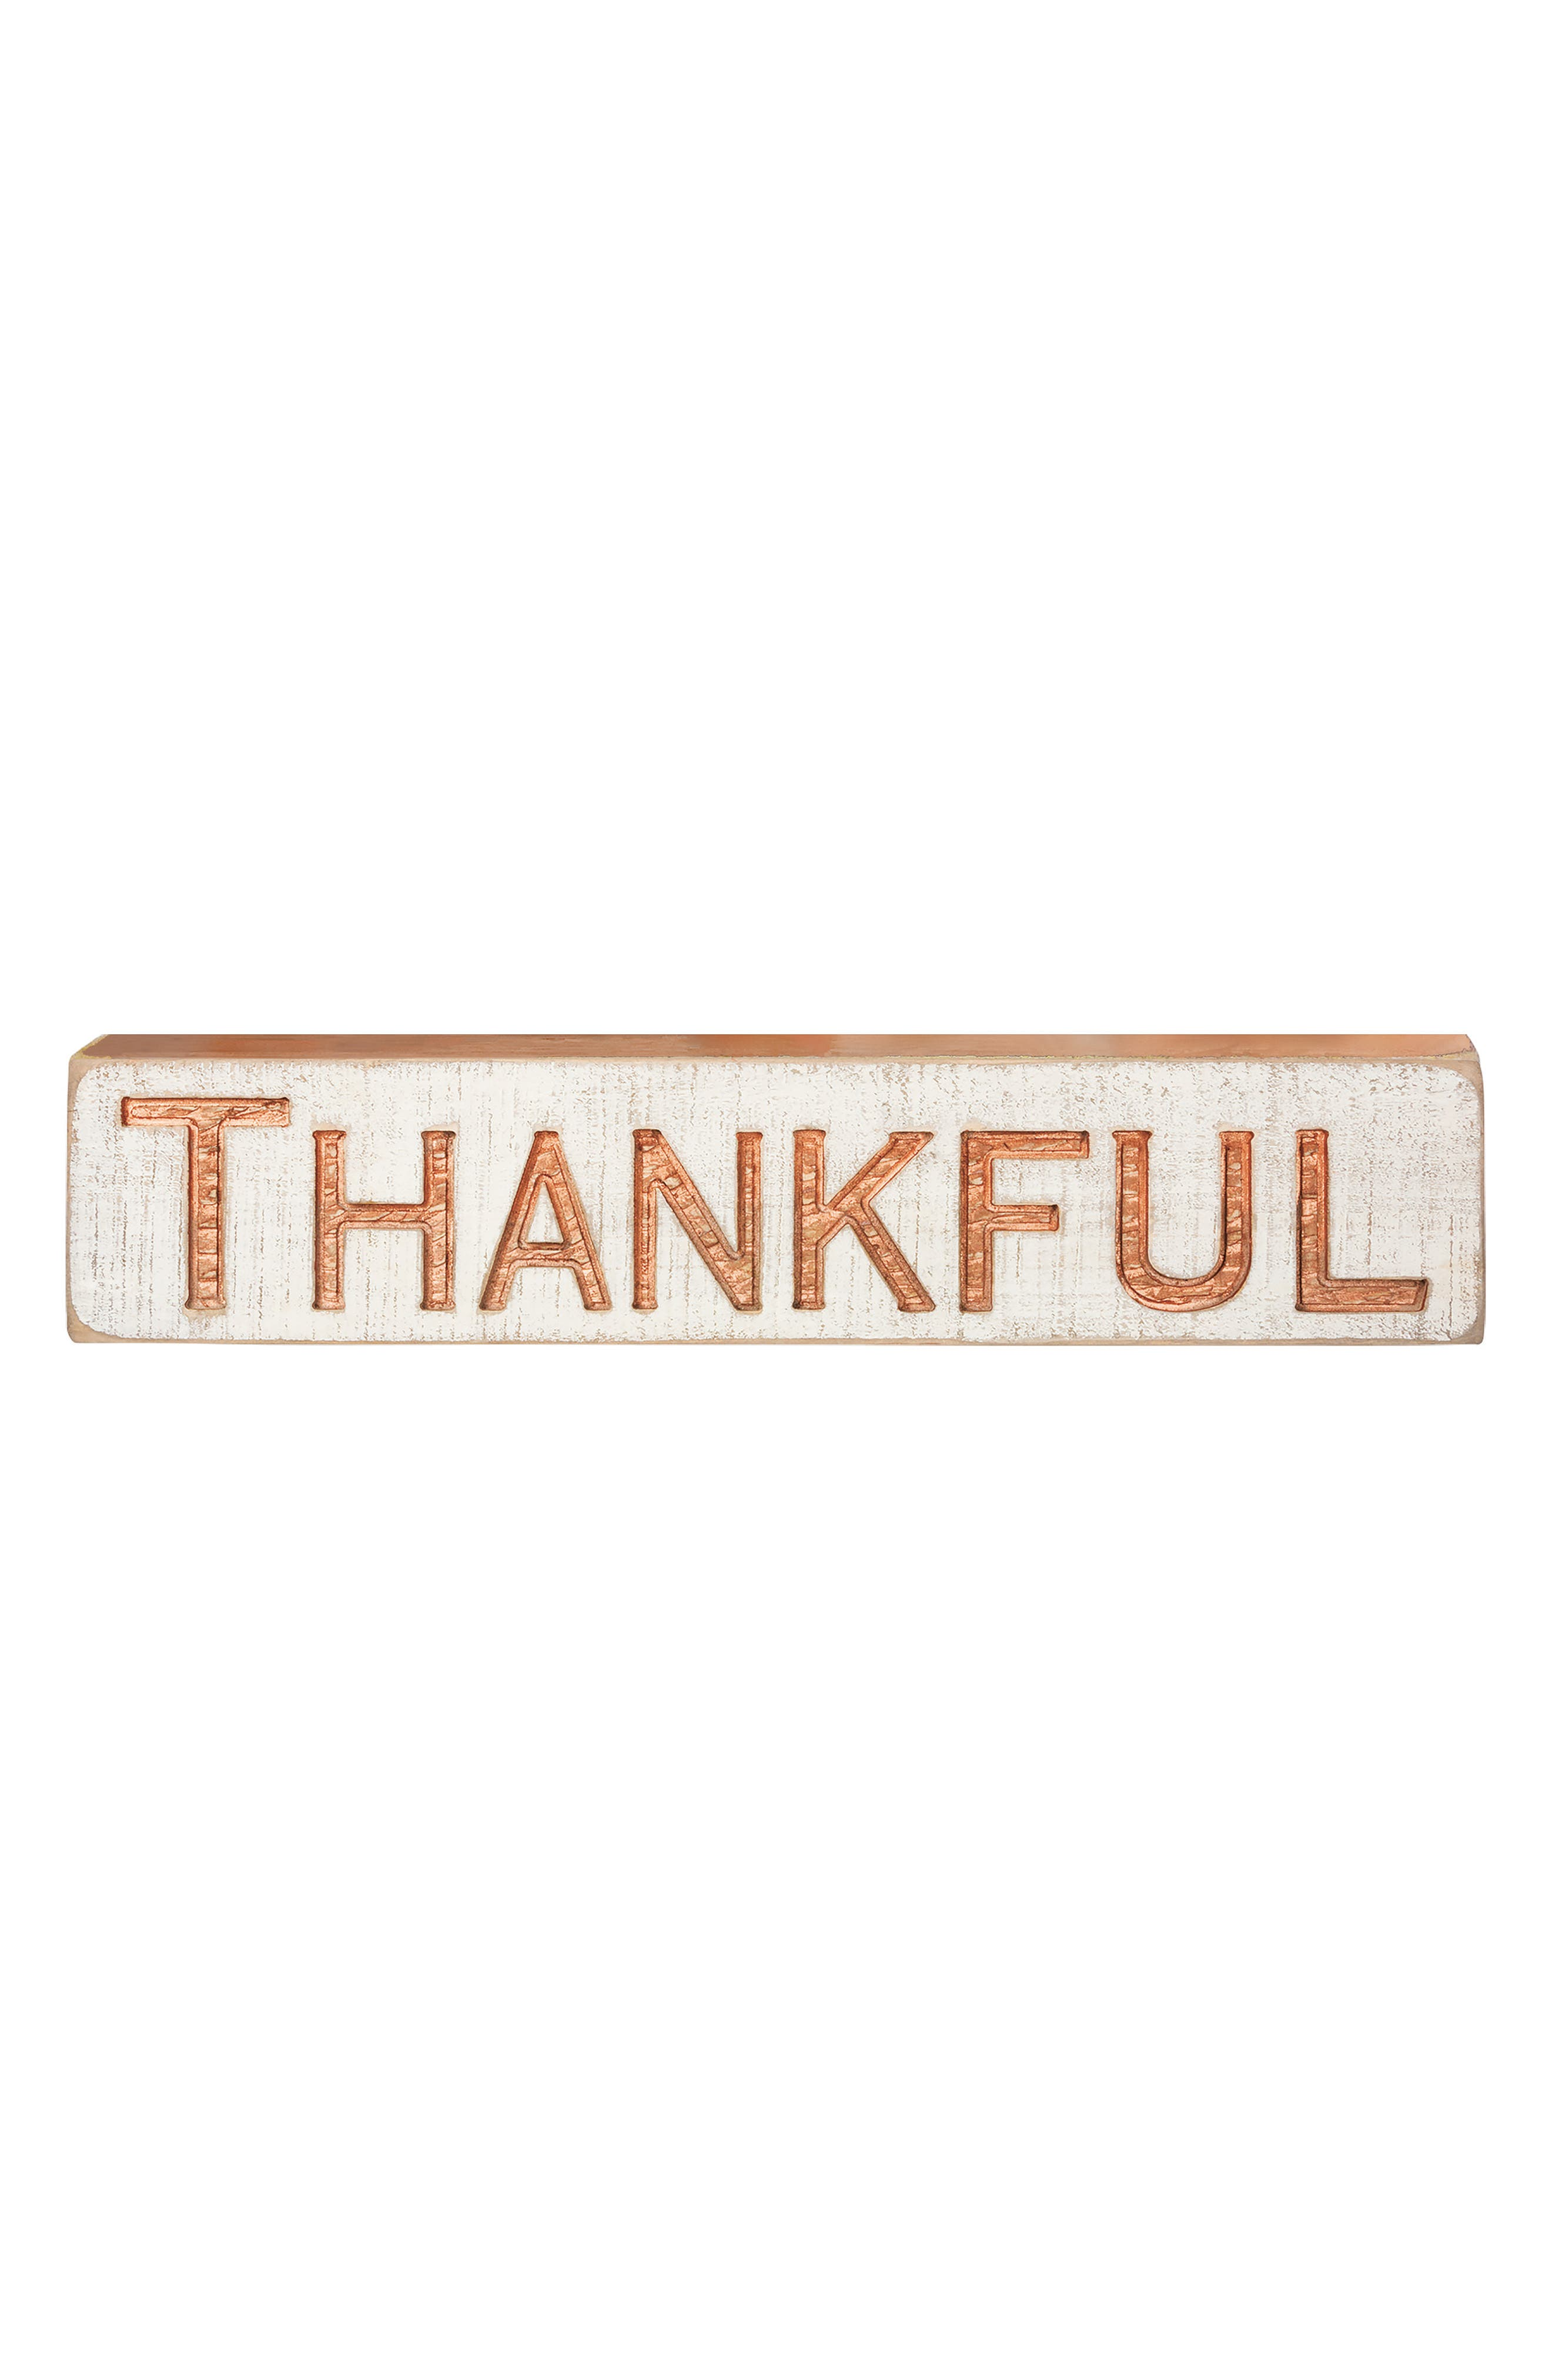 Thankful Carved Wood Sign,                             Main thumbnail 1, color,                             220